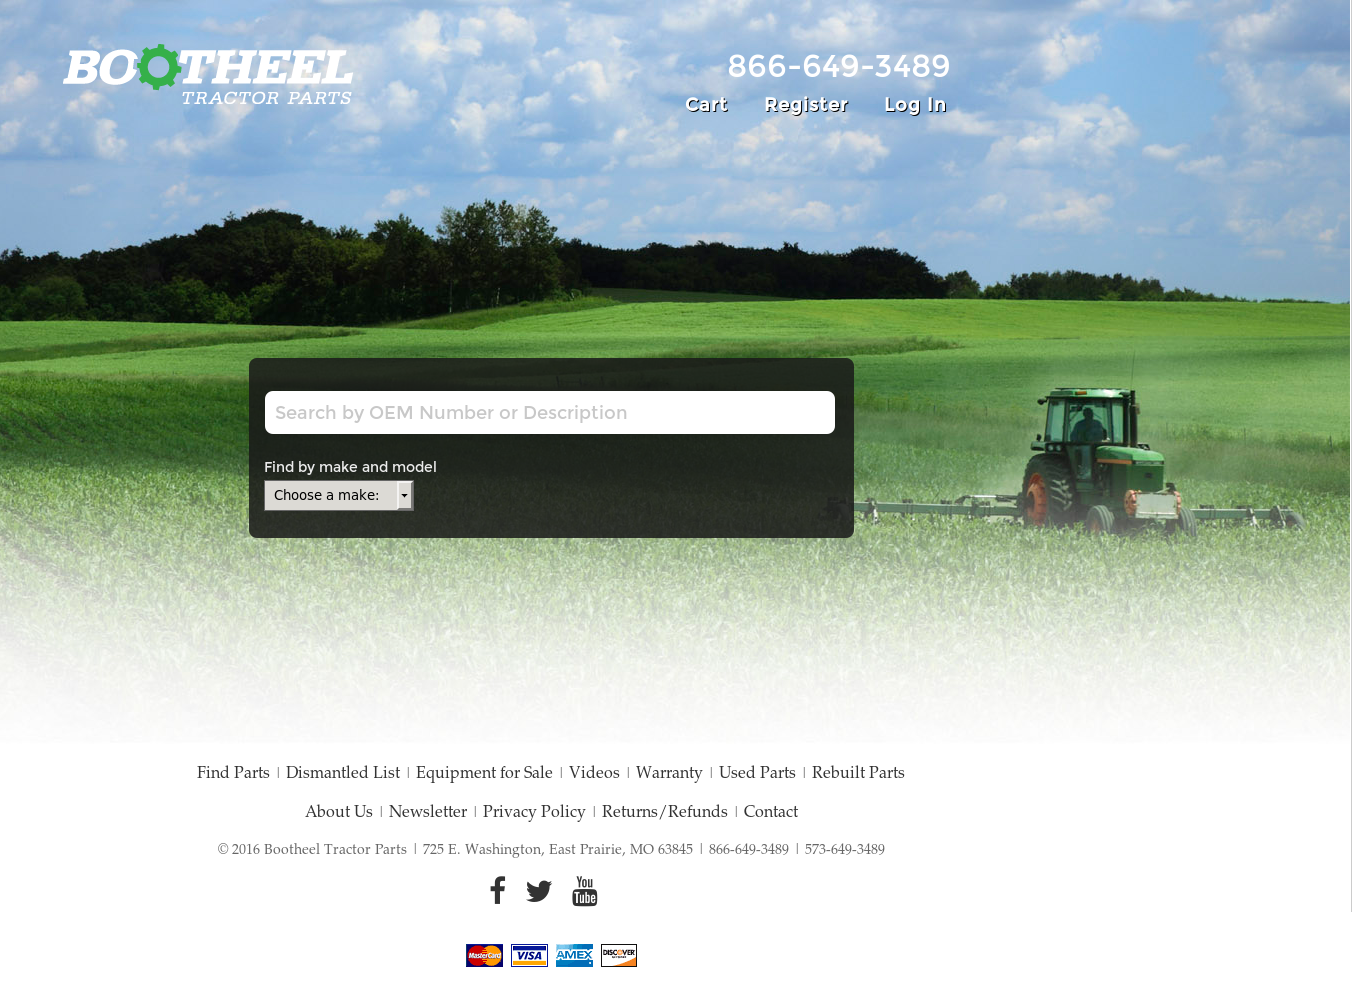 Bootheel Tractor Parts Competitors, Revenue and Employees